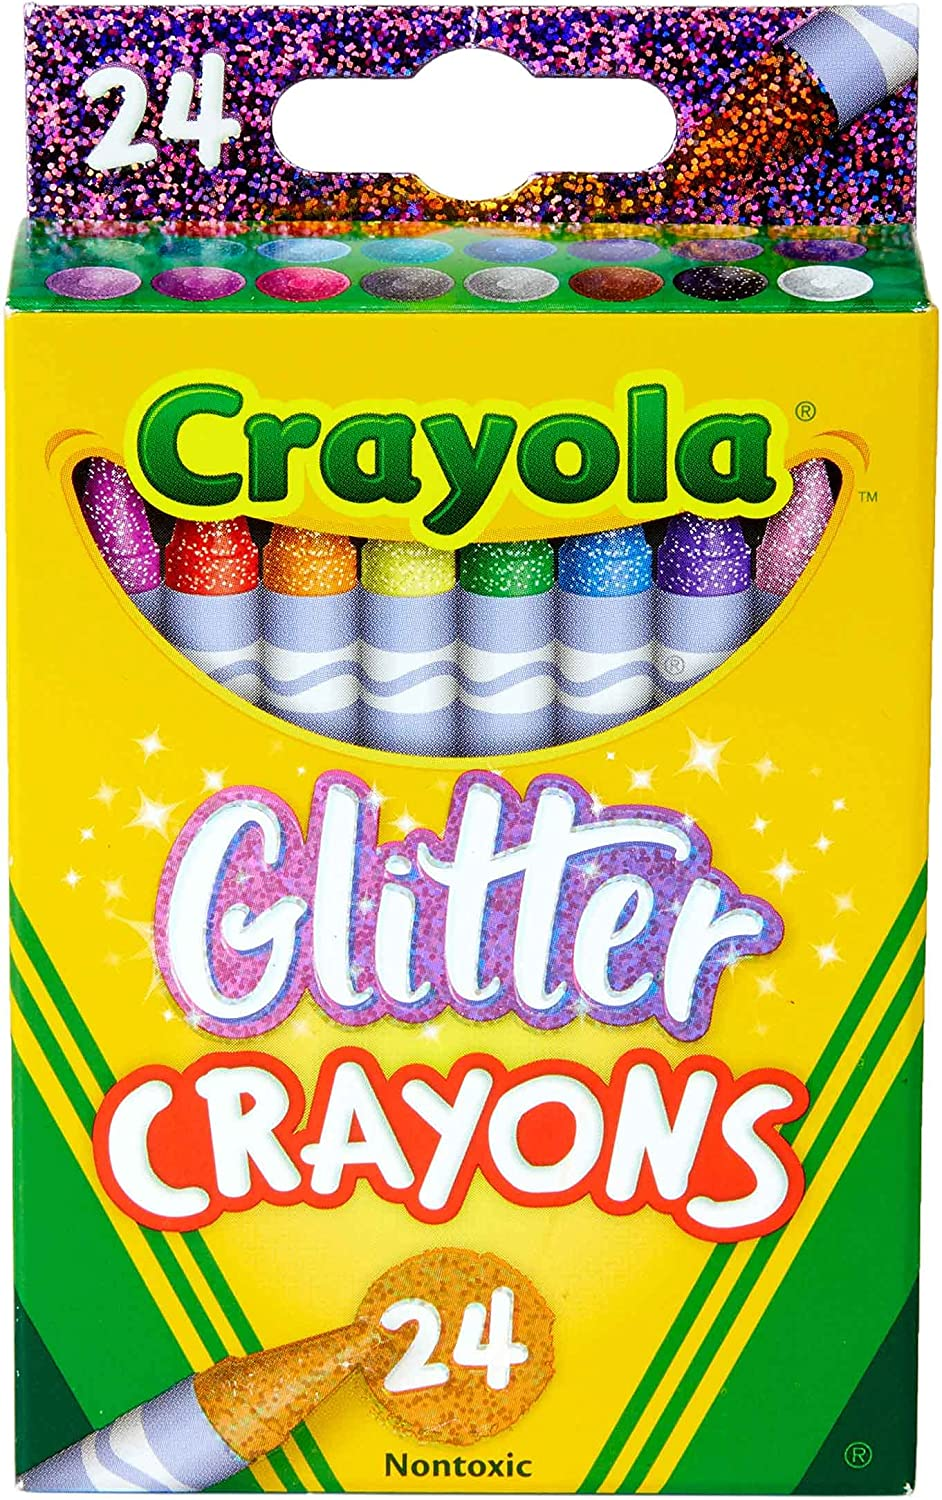 Crayola Glitter Crayons, Back To School Supplies, 24Count, Multi